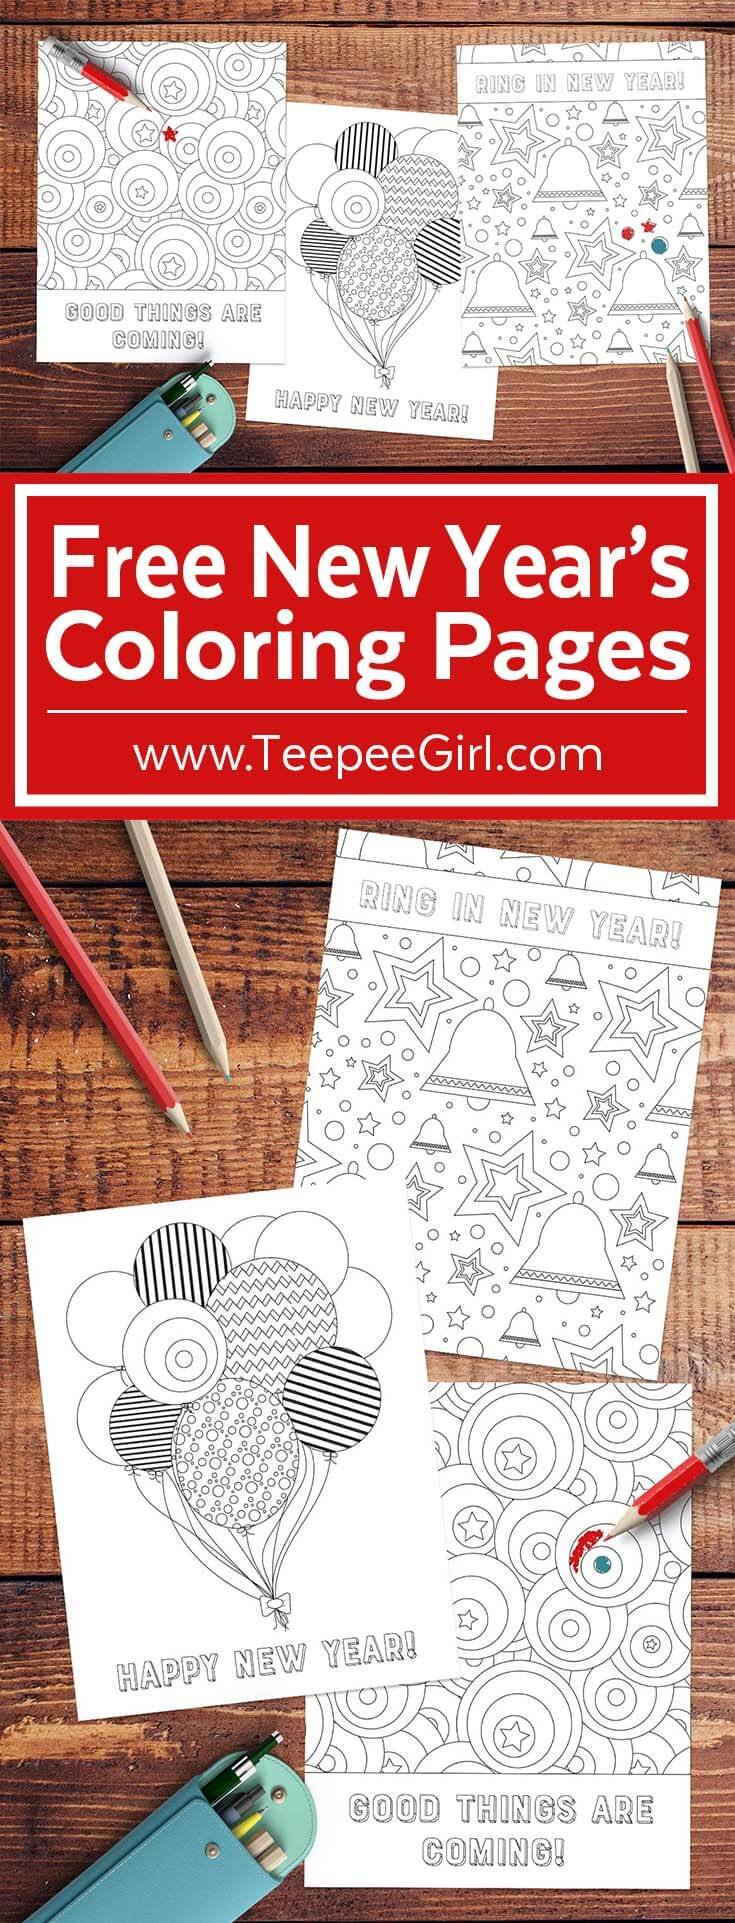 Free New Year Coloring Pages | www.TeepeeGirl.com